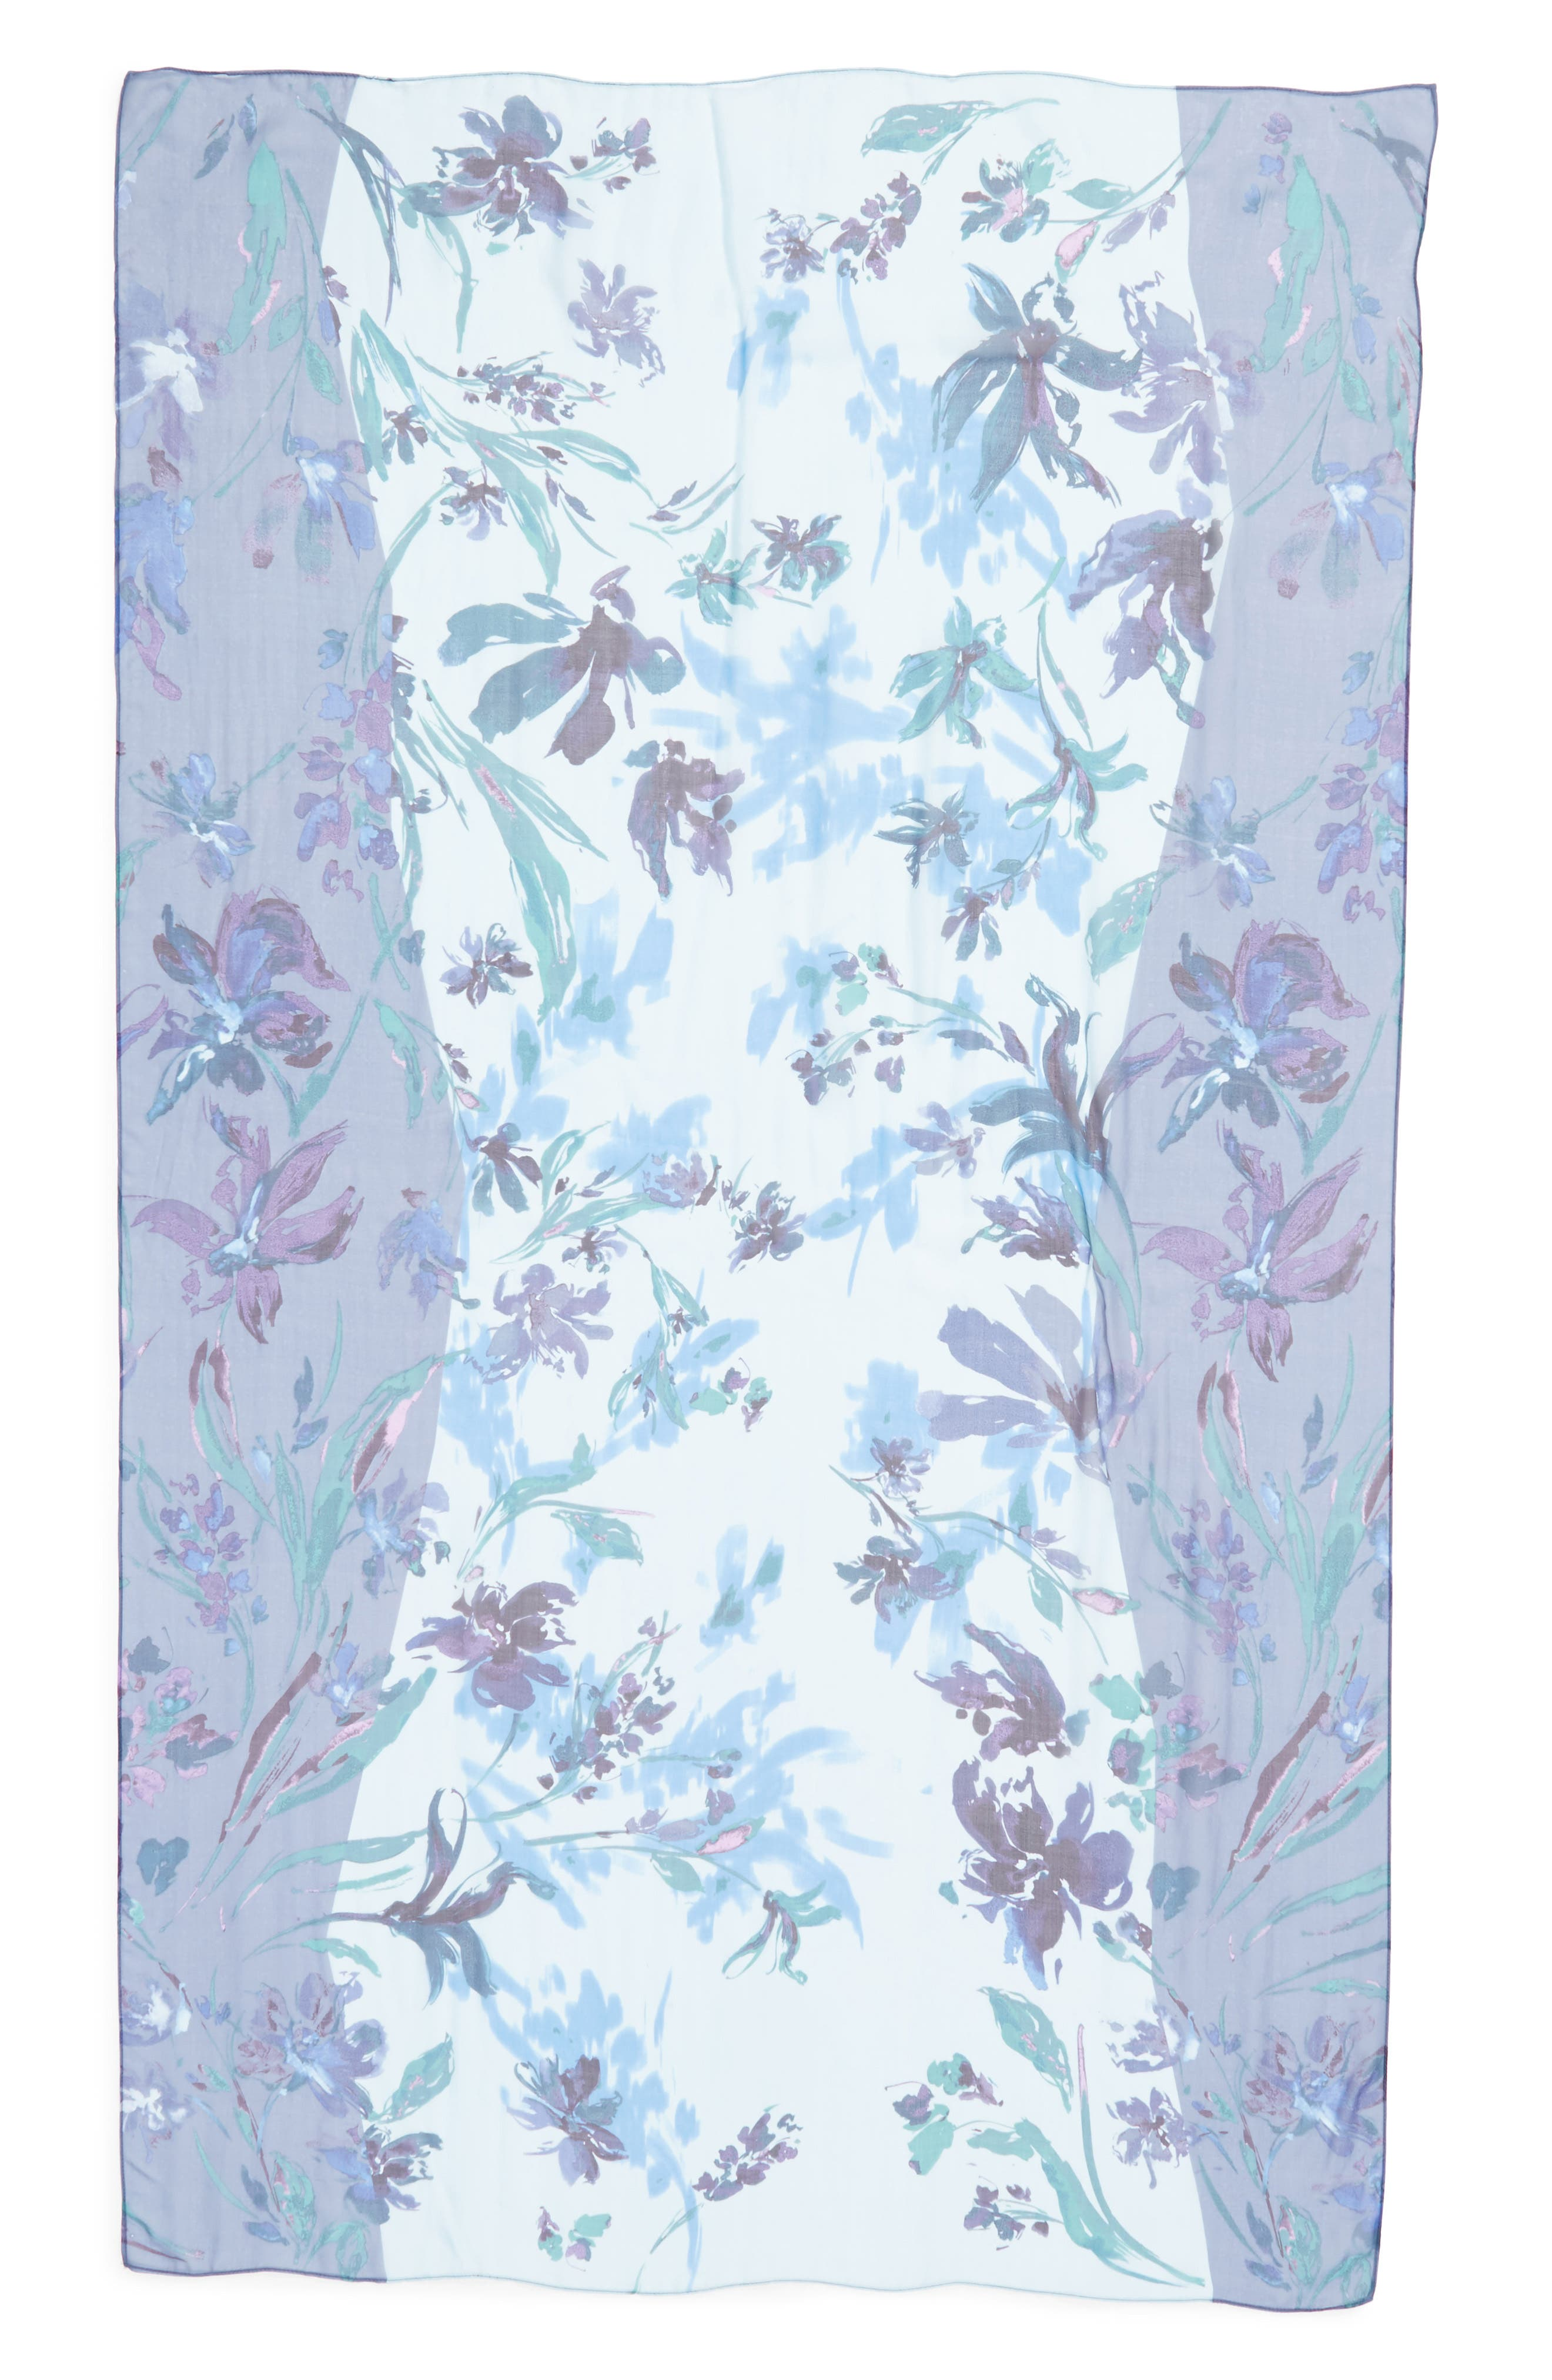 Silk Chiffon Oblong Scarf,                             Alternate thumbnail 3, color,                             Blue Mapped Floral Mix